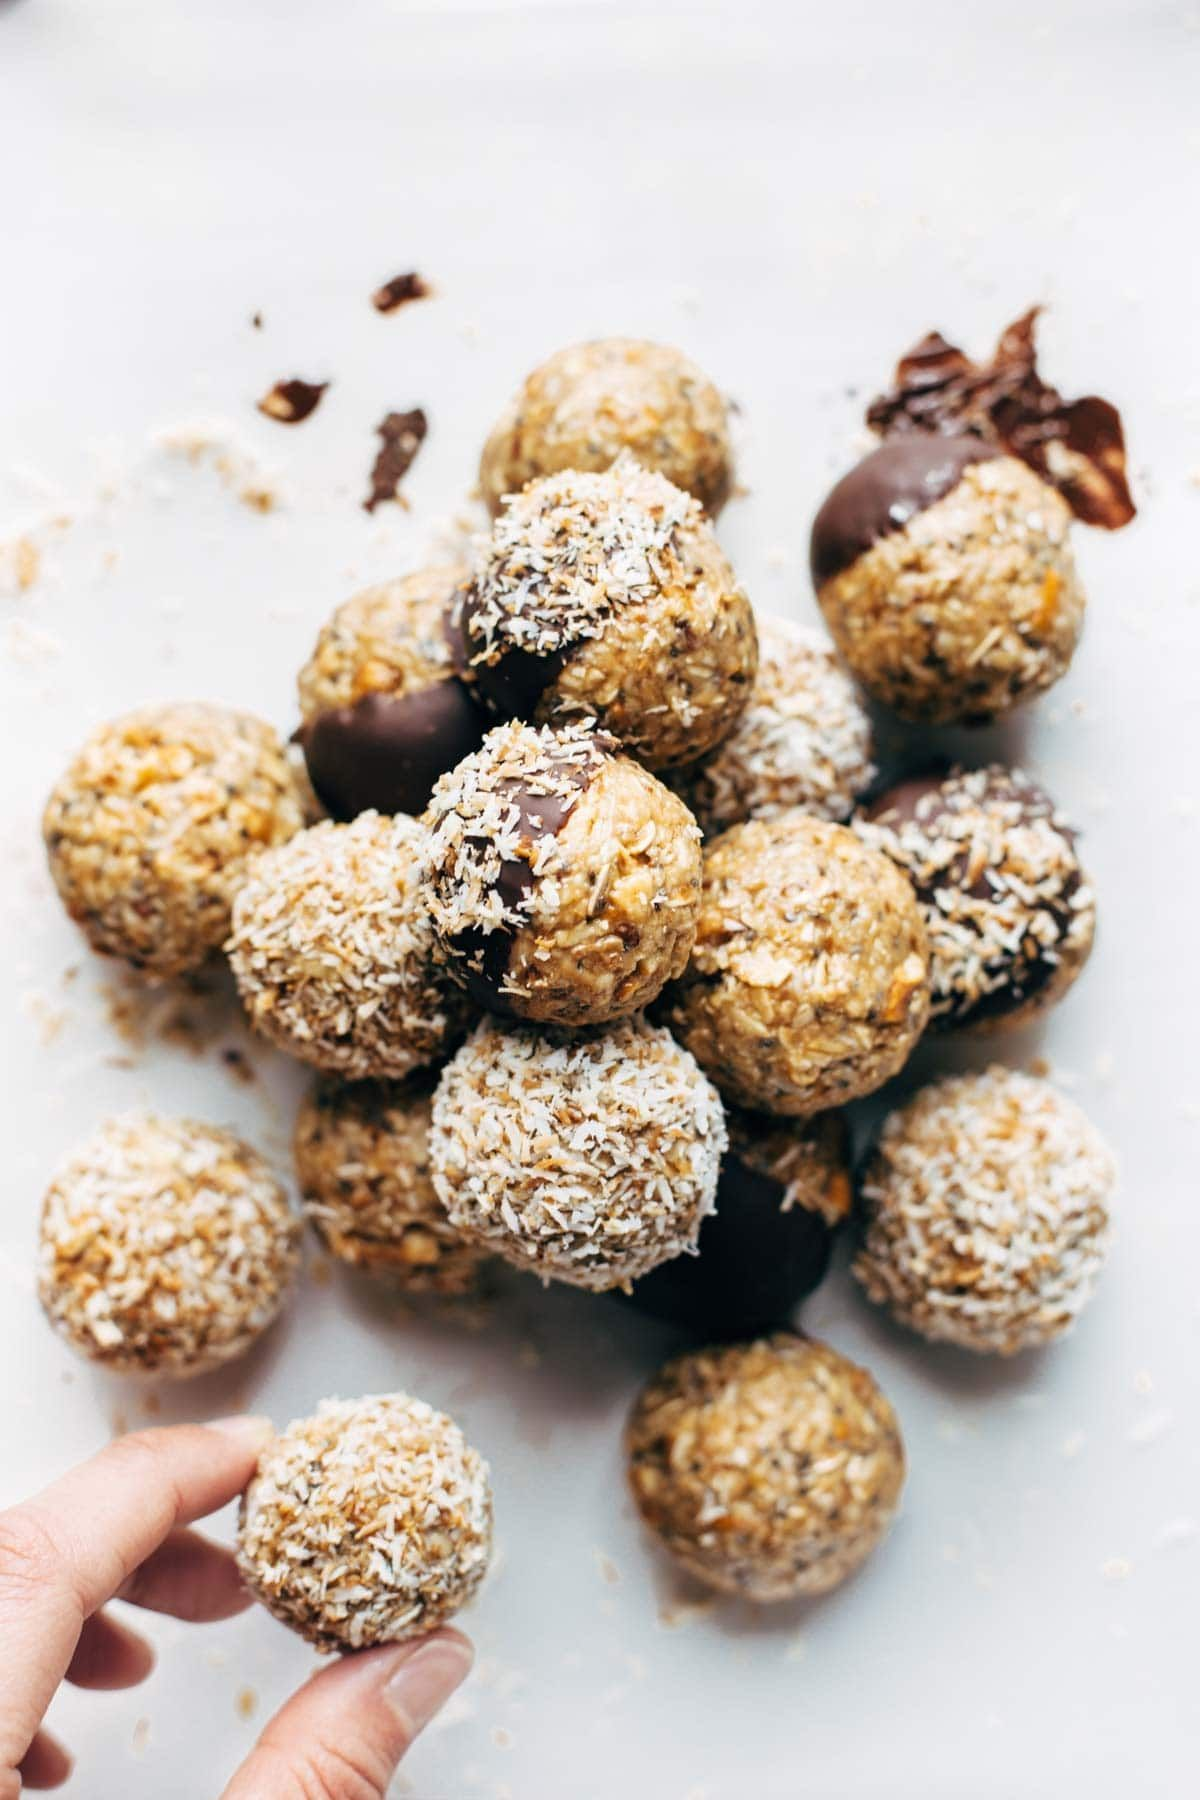 Butter Pretzel Energy Bites Energy Bites! Easy no-bake recipe with real food like oats, chia seeds, peanut butter, and coconut. Stays soft and yummy for weeks in the fridge! | Energy Bites! Easy no-bake recipe with real food like oats, chia seeds, peanut butter, and coconut. Stays soft and yummy for weeks in the fridge! |